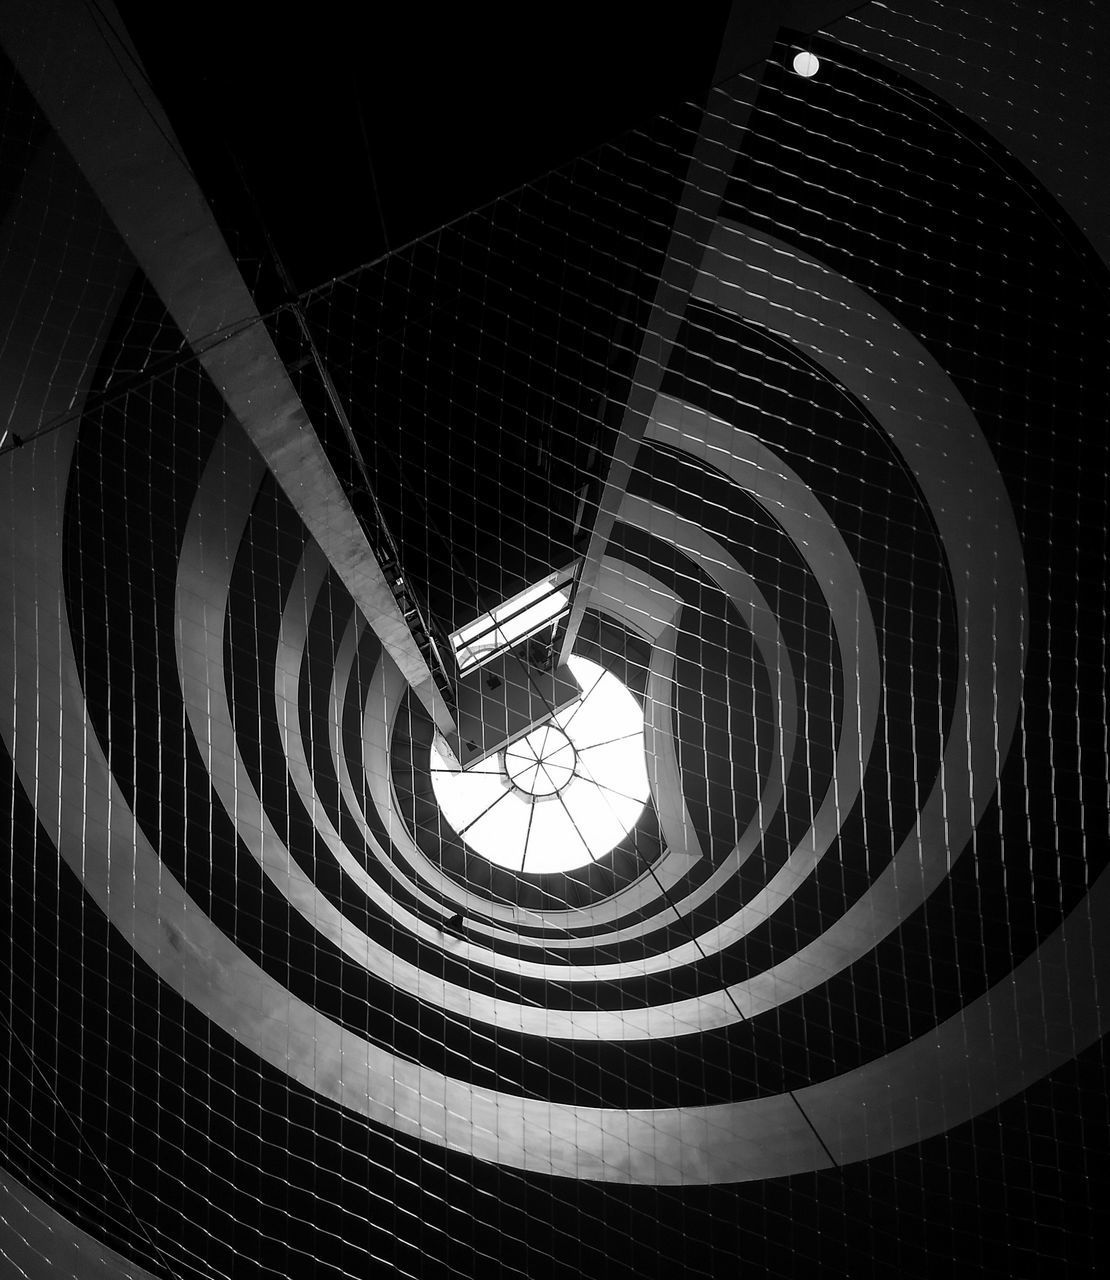 built structure, architecture, indoors, pattern, modern, staircase, steps and staircases, low angle view, shape, spiral, design, geometric shape, ceiling, building, architectural feature, railing, illuminated, circle, no people, skylight, directly below, digital composite